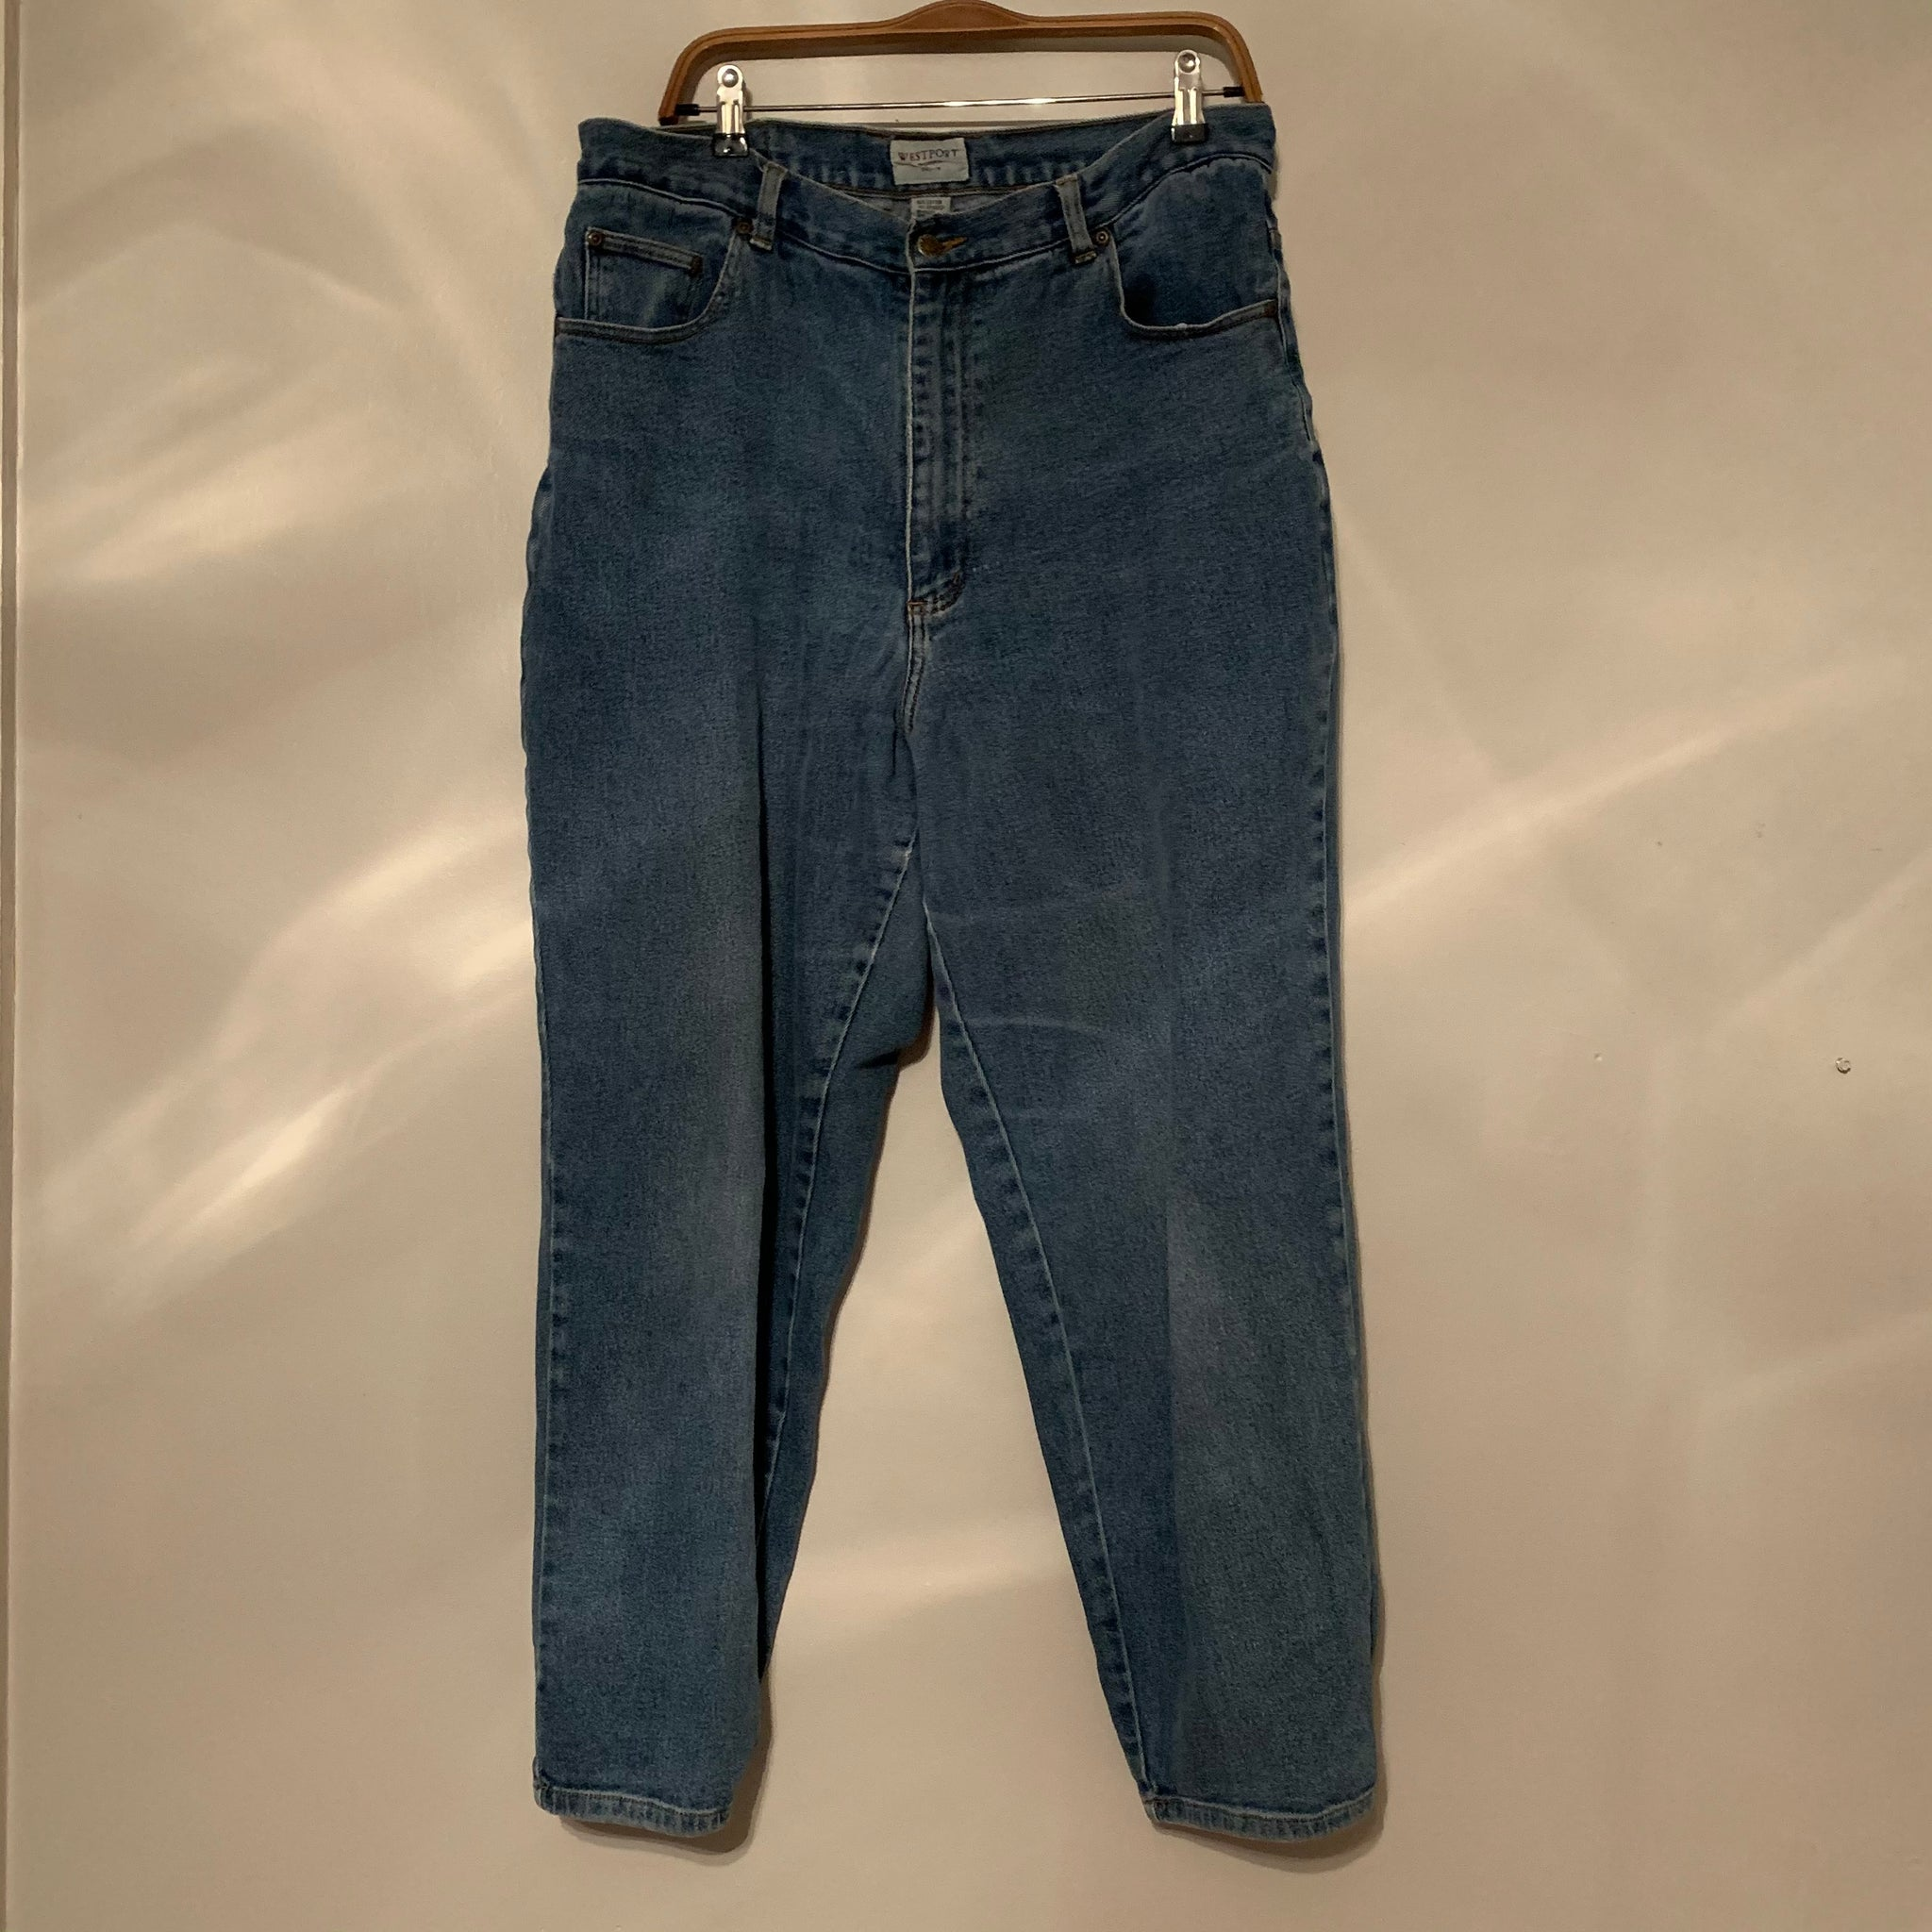 'Elin' Oversized Medium Wash Vintage Jeans (L/XL)